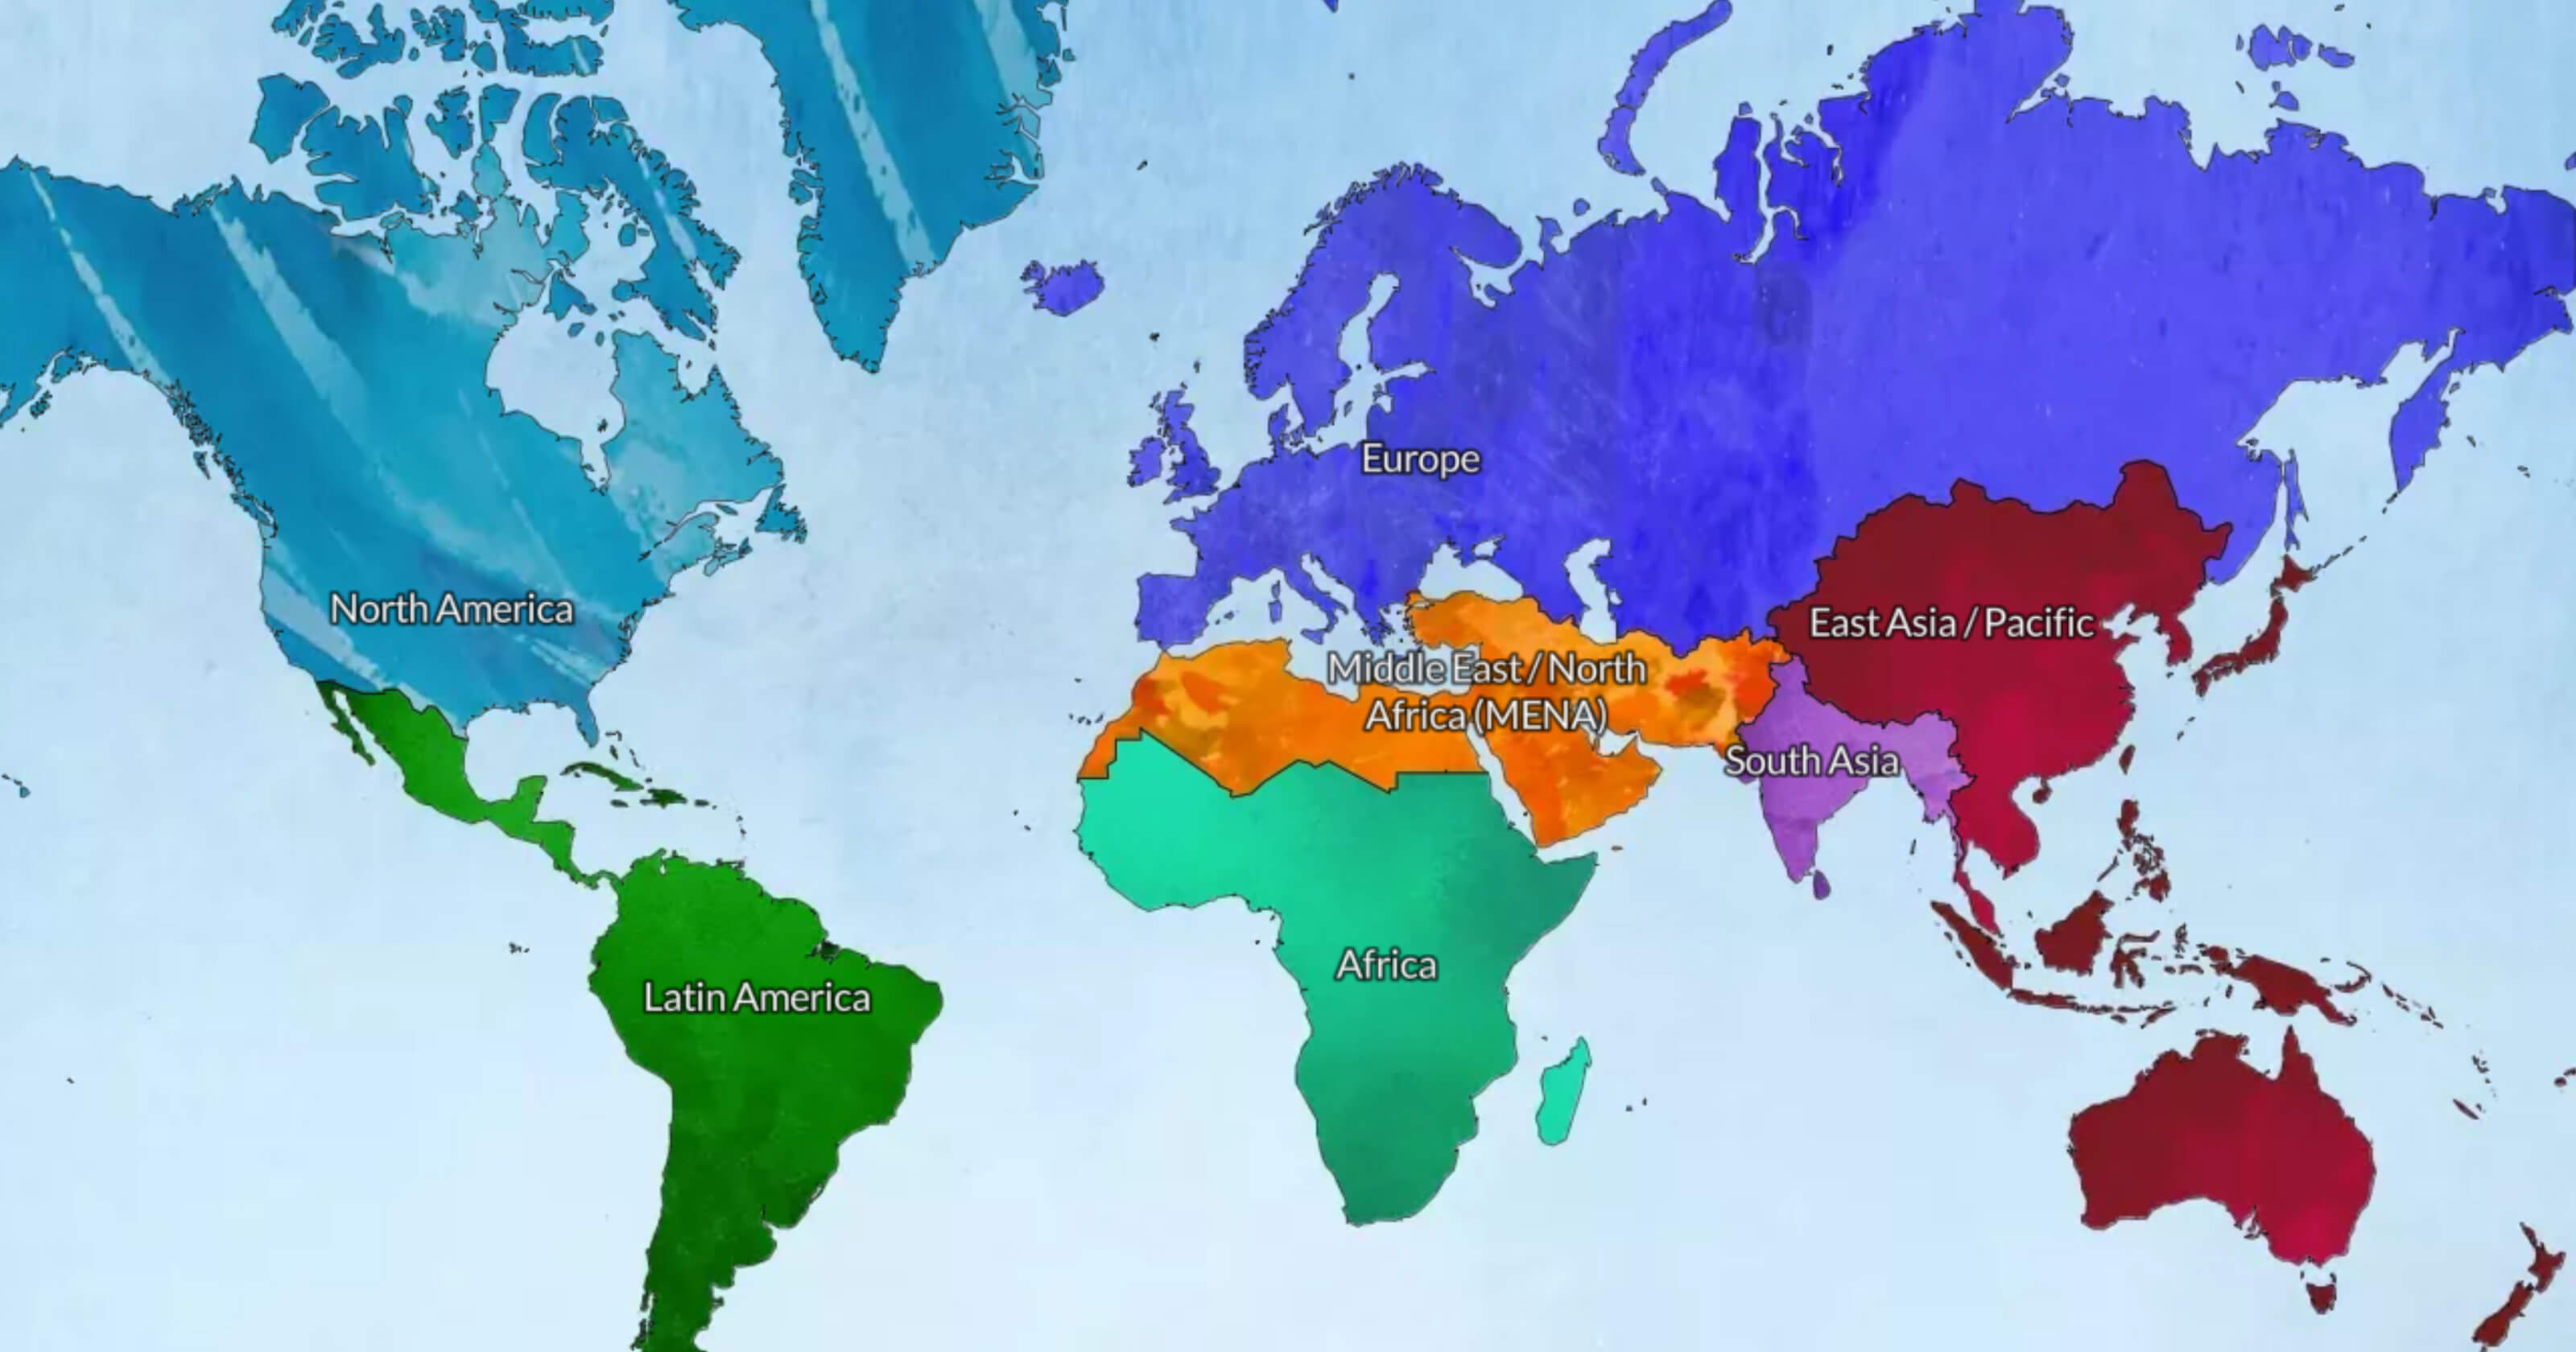 Map Of Europe And South America.Ministry Map Biblica The International Bible Society